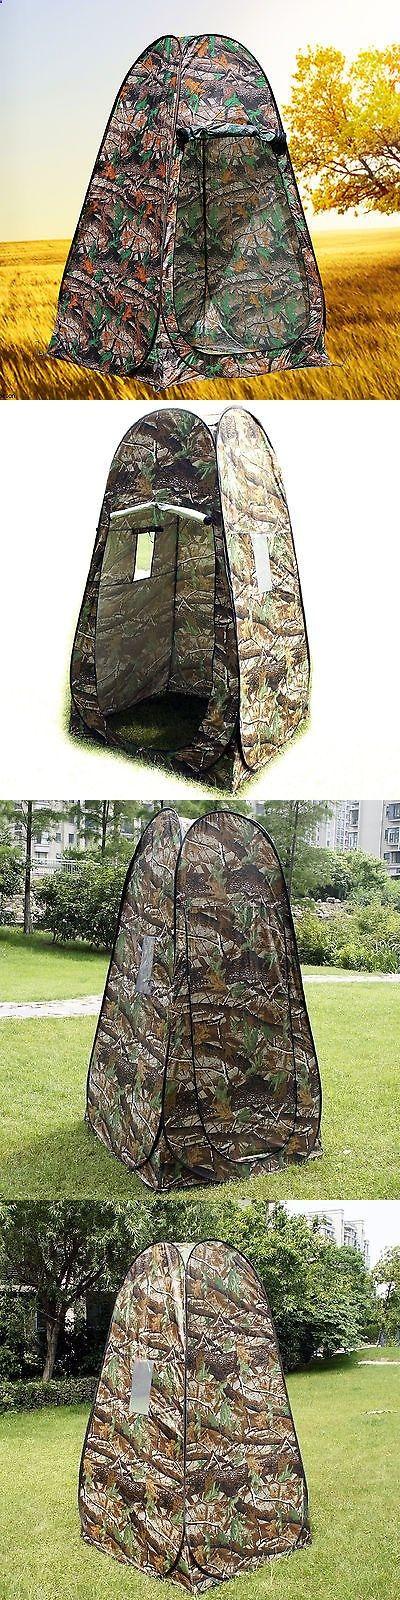 Other Camping Hygiene Accs 181400: Gazelle Camo Portable Camping Toilet Pop Up Tent Privacy Shower Changing Room BUY IT NOW ONLY: $31.79